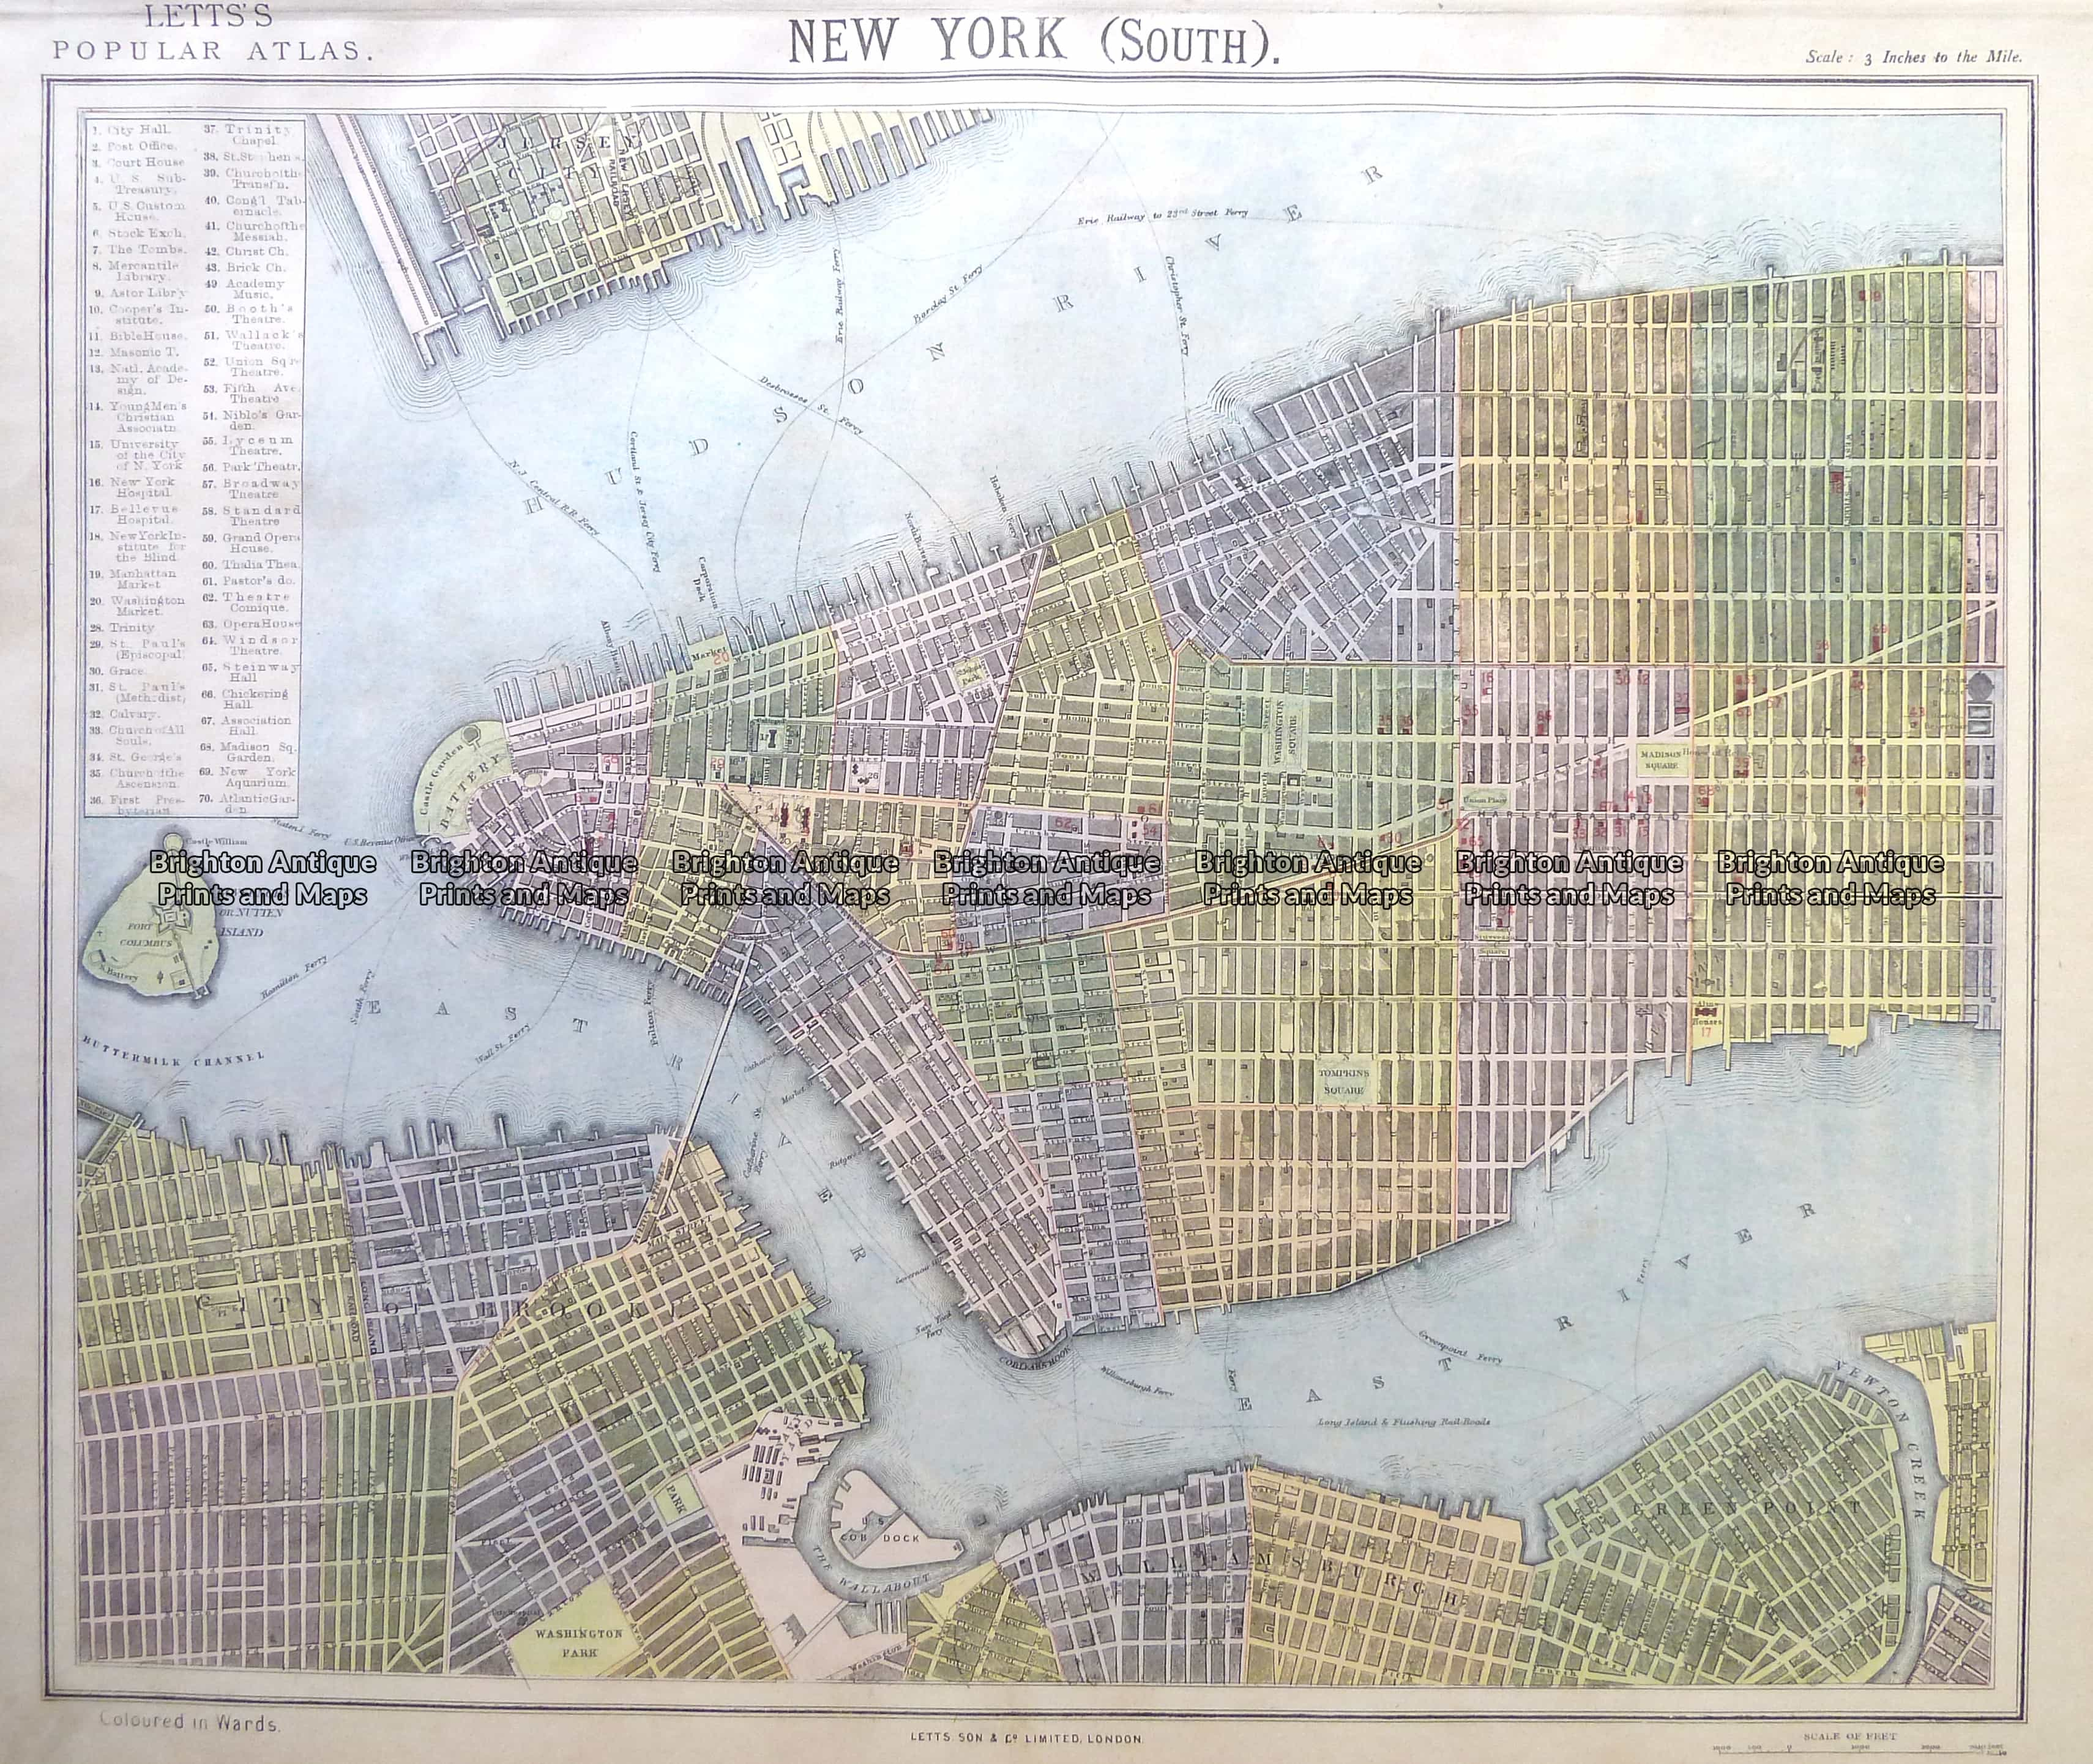 Road Map Of Manhattan.8 201 New York Lower Manhattan Street Map By Letts C 1883